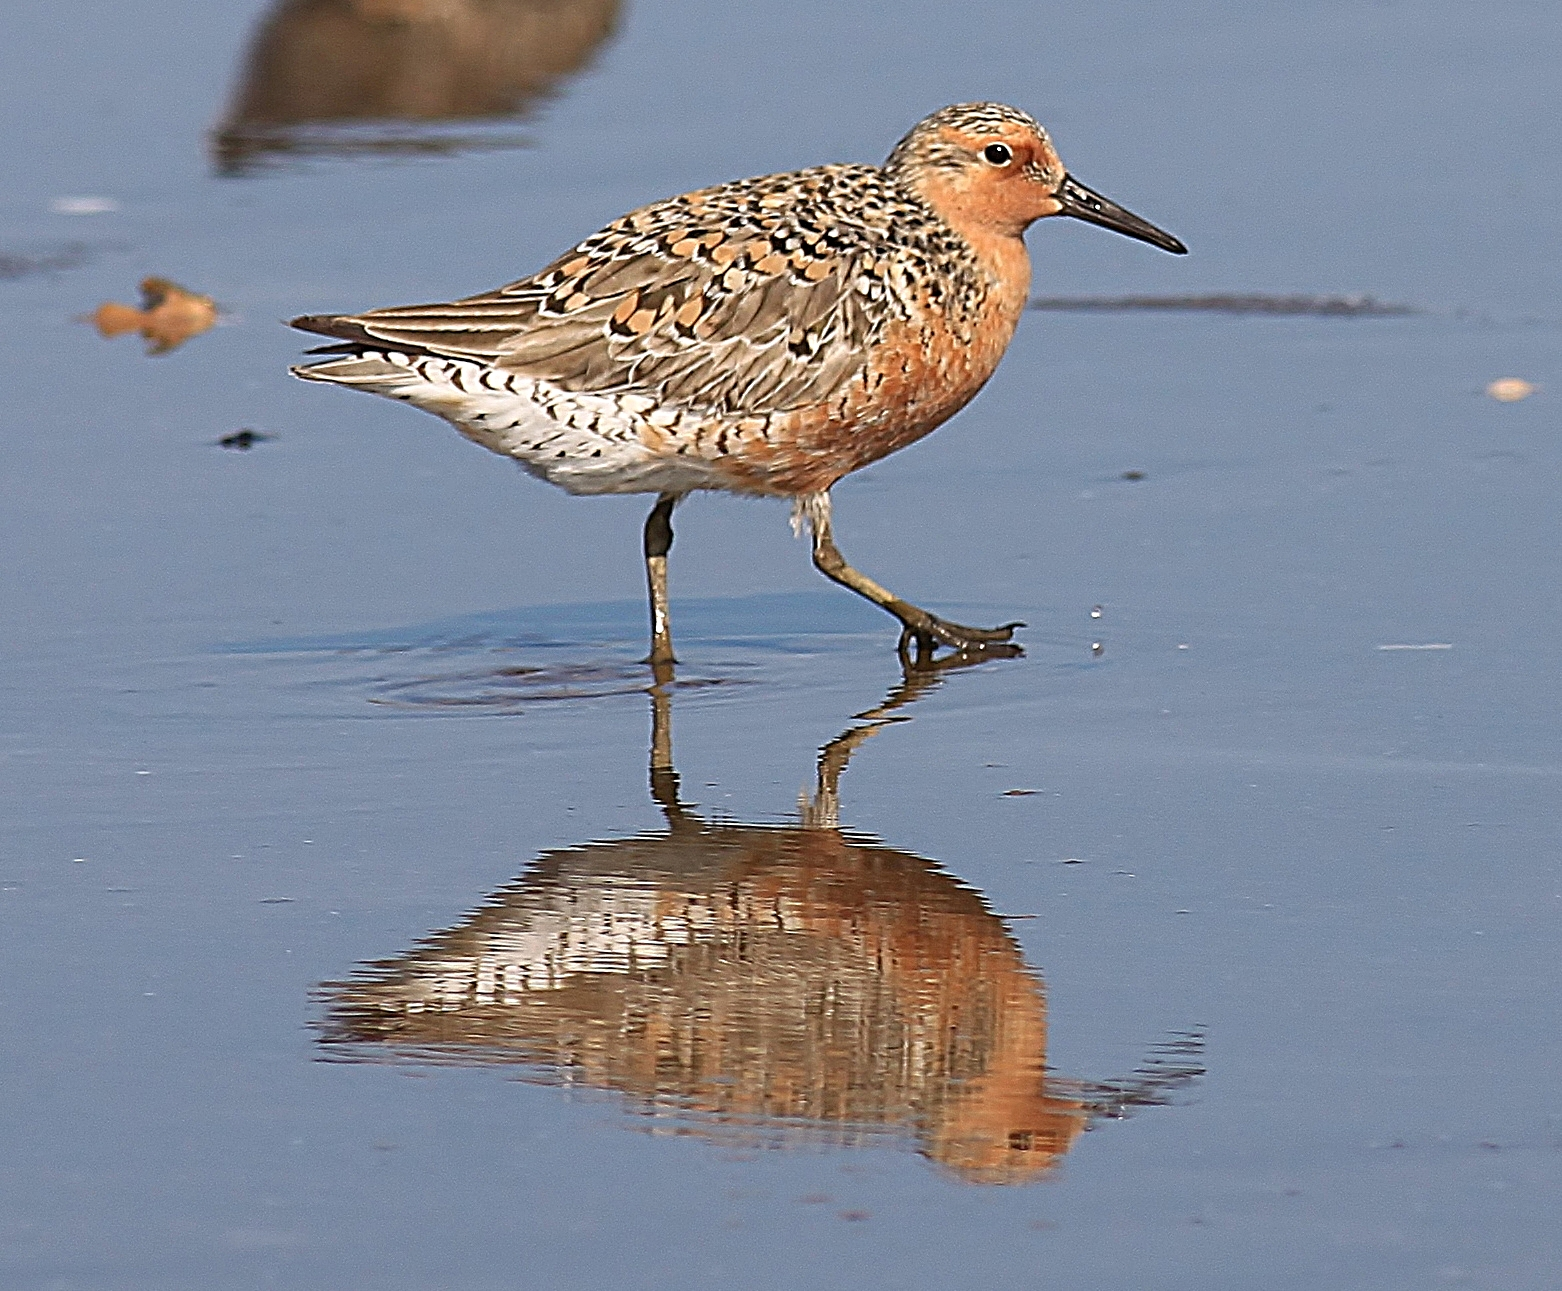 Scientists  released a report  announcing that a decrease of at least 5,000 Red Knots was observed at key wintering grounds in Tierra del Fuego, Chile from the previous year. Scientists reported population counts of wintering knots in other locations declined as well. The estimated current total population for the migratory shorebird is now unlikely to be more than 25,000.